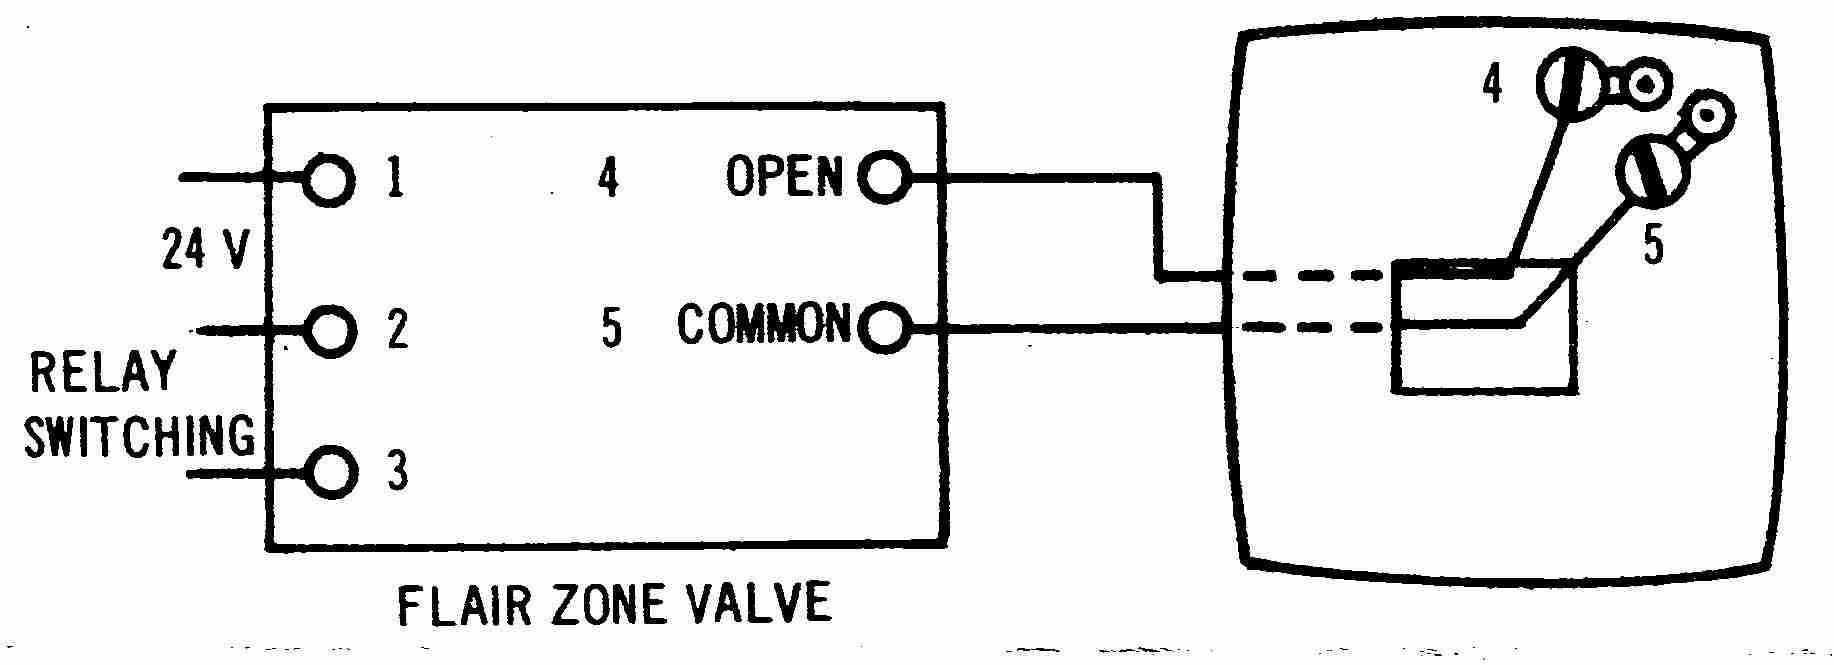 Flair2w_001_DJFc1 room thermostat wiring diagrams for hvac systems fcu wiring diagram at webbmarketing.co